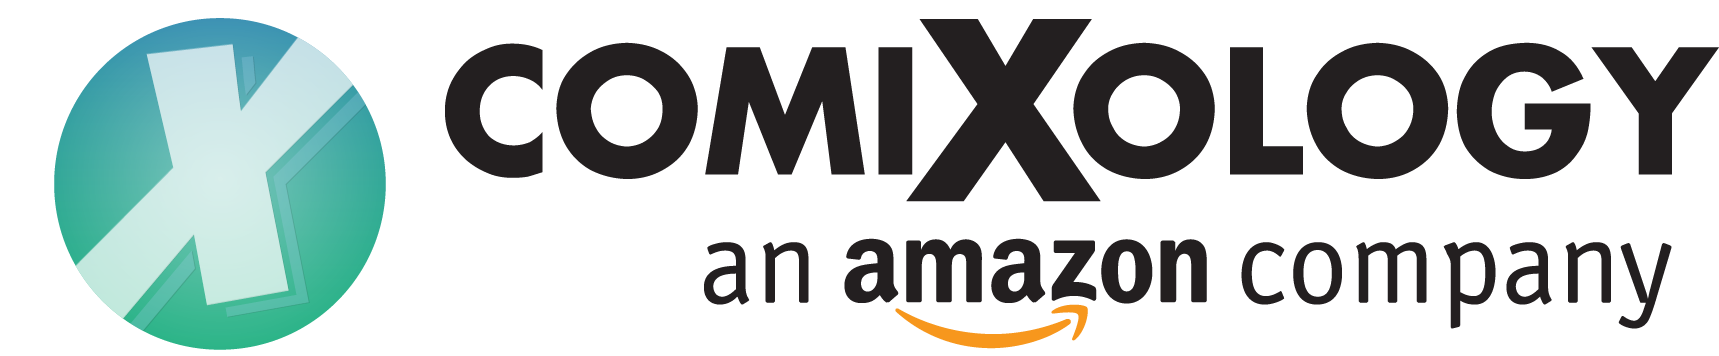 ComiXology, an Amazon.com, Inc. subsidiary, is a revolutionary, cloud-based digital comics service. With content from over 125 publishers as well as thousands of independent creators from around the world, comiXology provides an unrivaled library of comic books, graphic novels, manga and bandes dessinées.